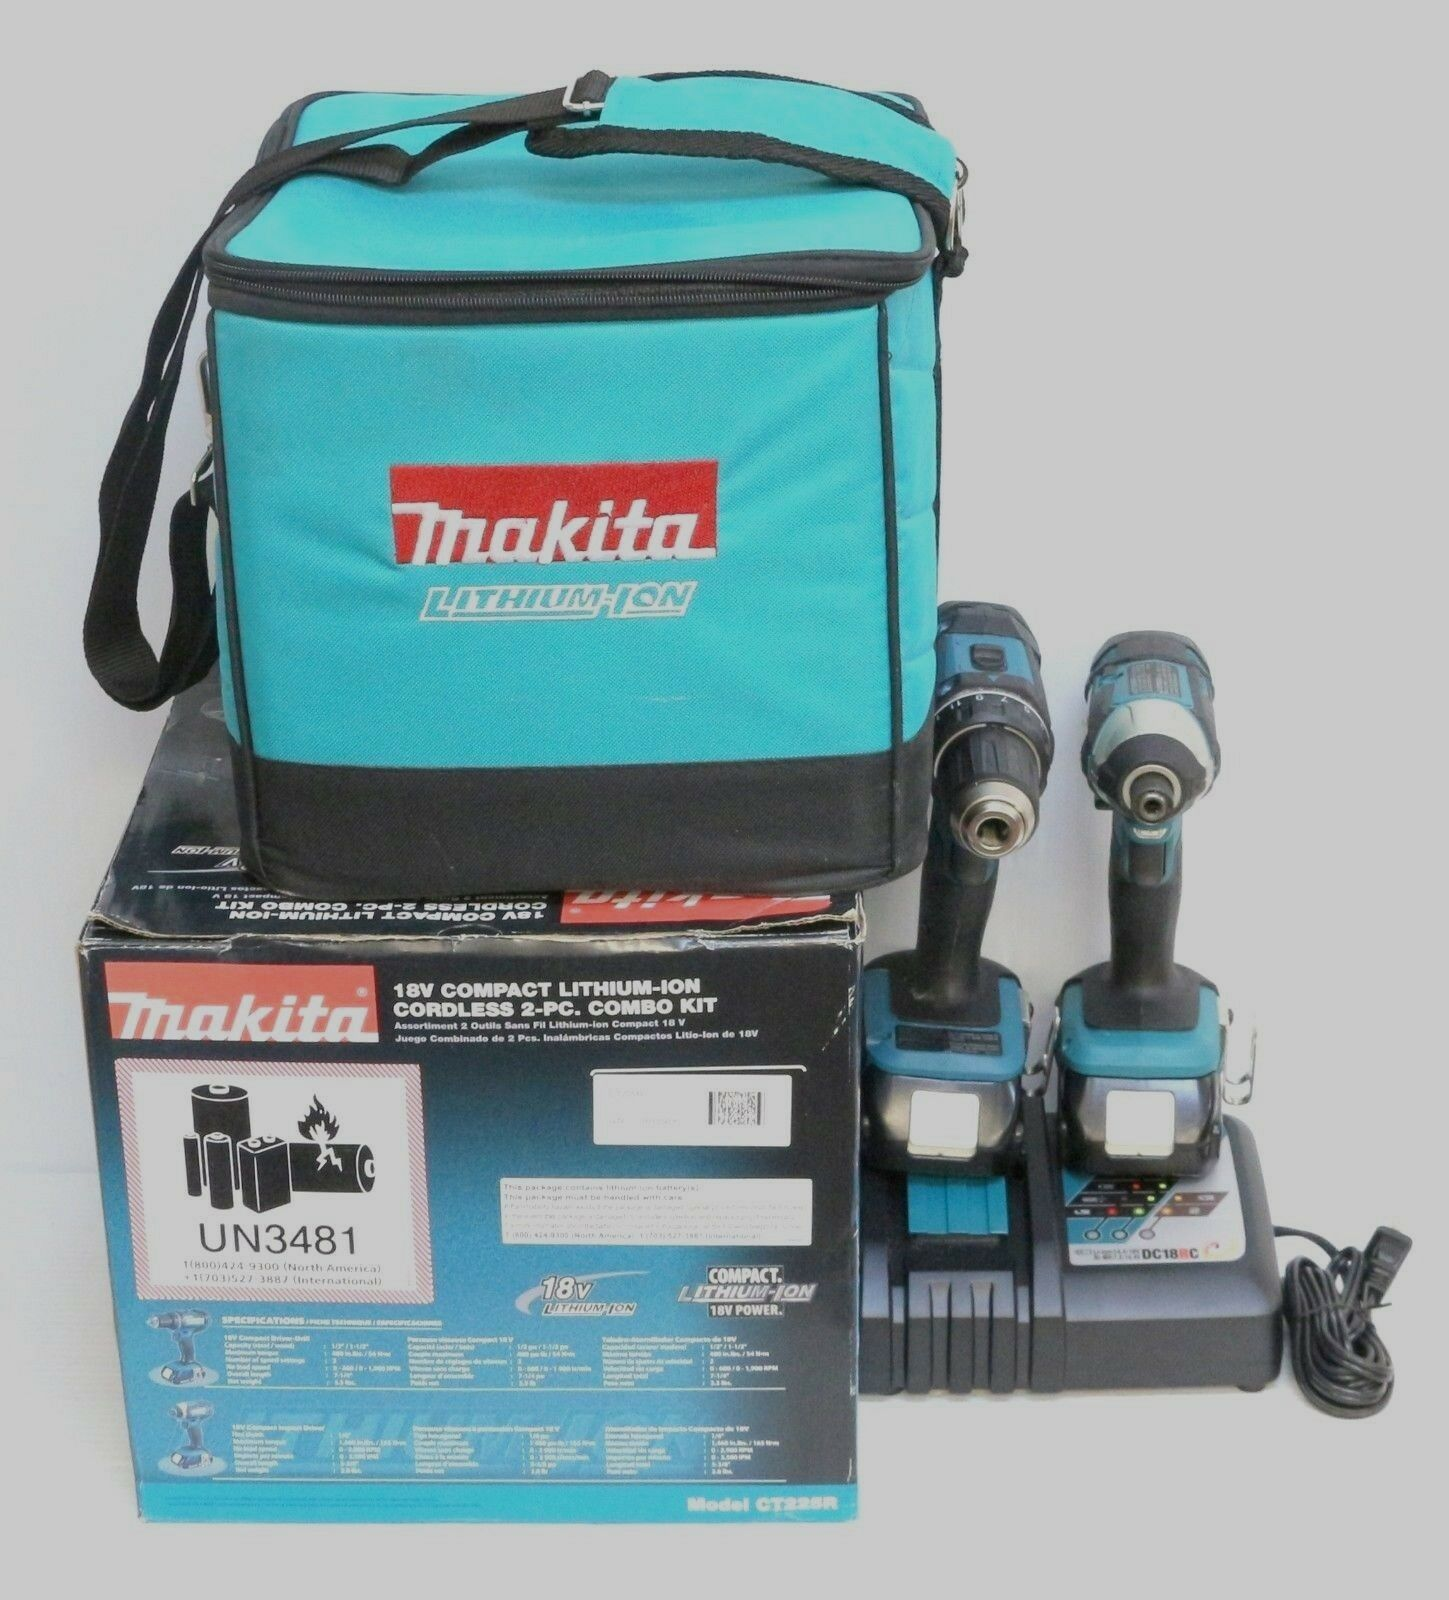 MAKITA 18-Volt LXT Lithium-Ion Cordless Driver Drill and Impact Driver Combo Kit